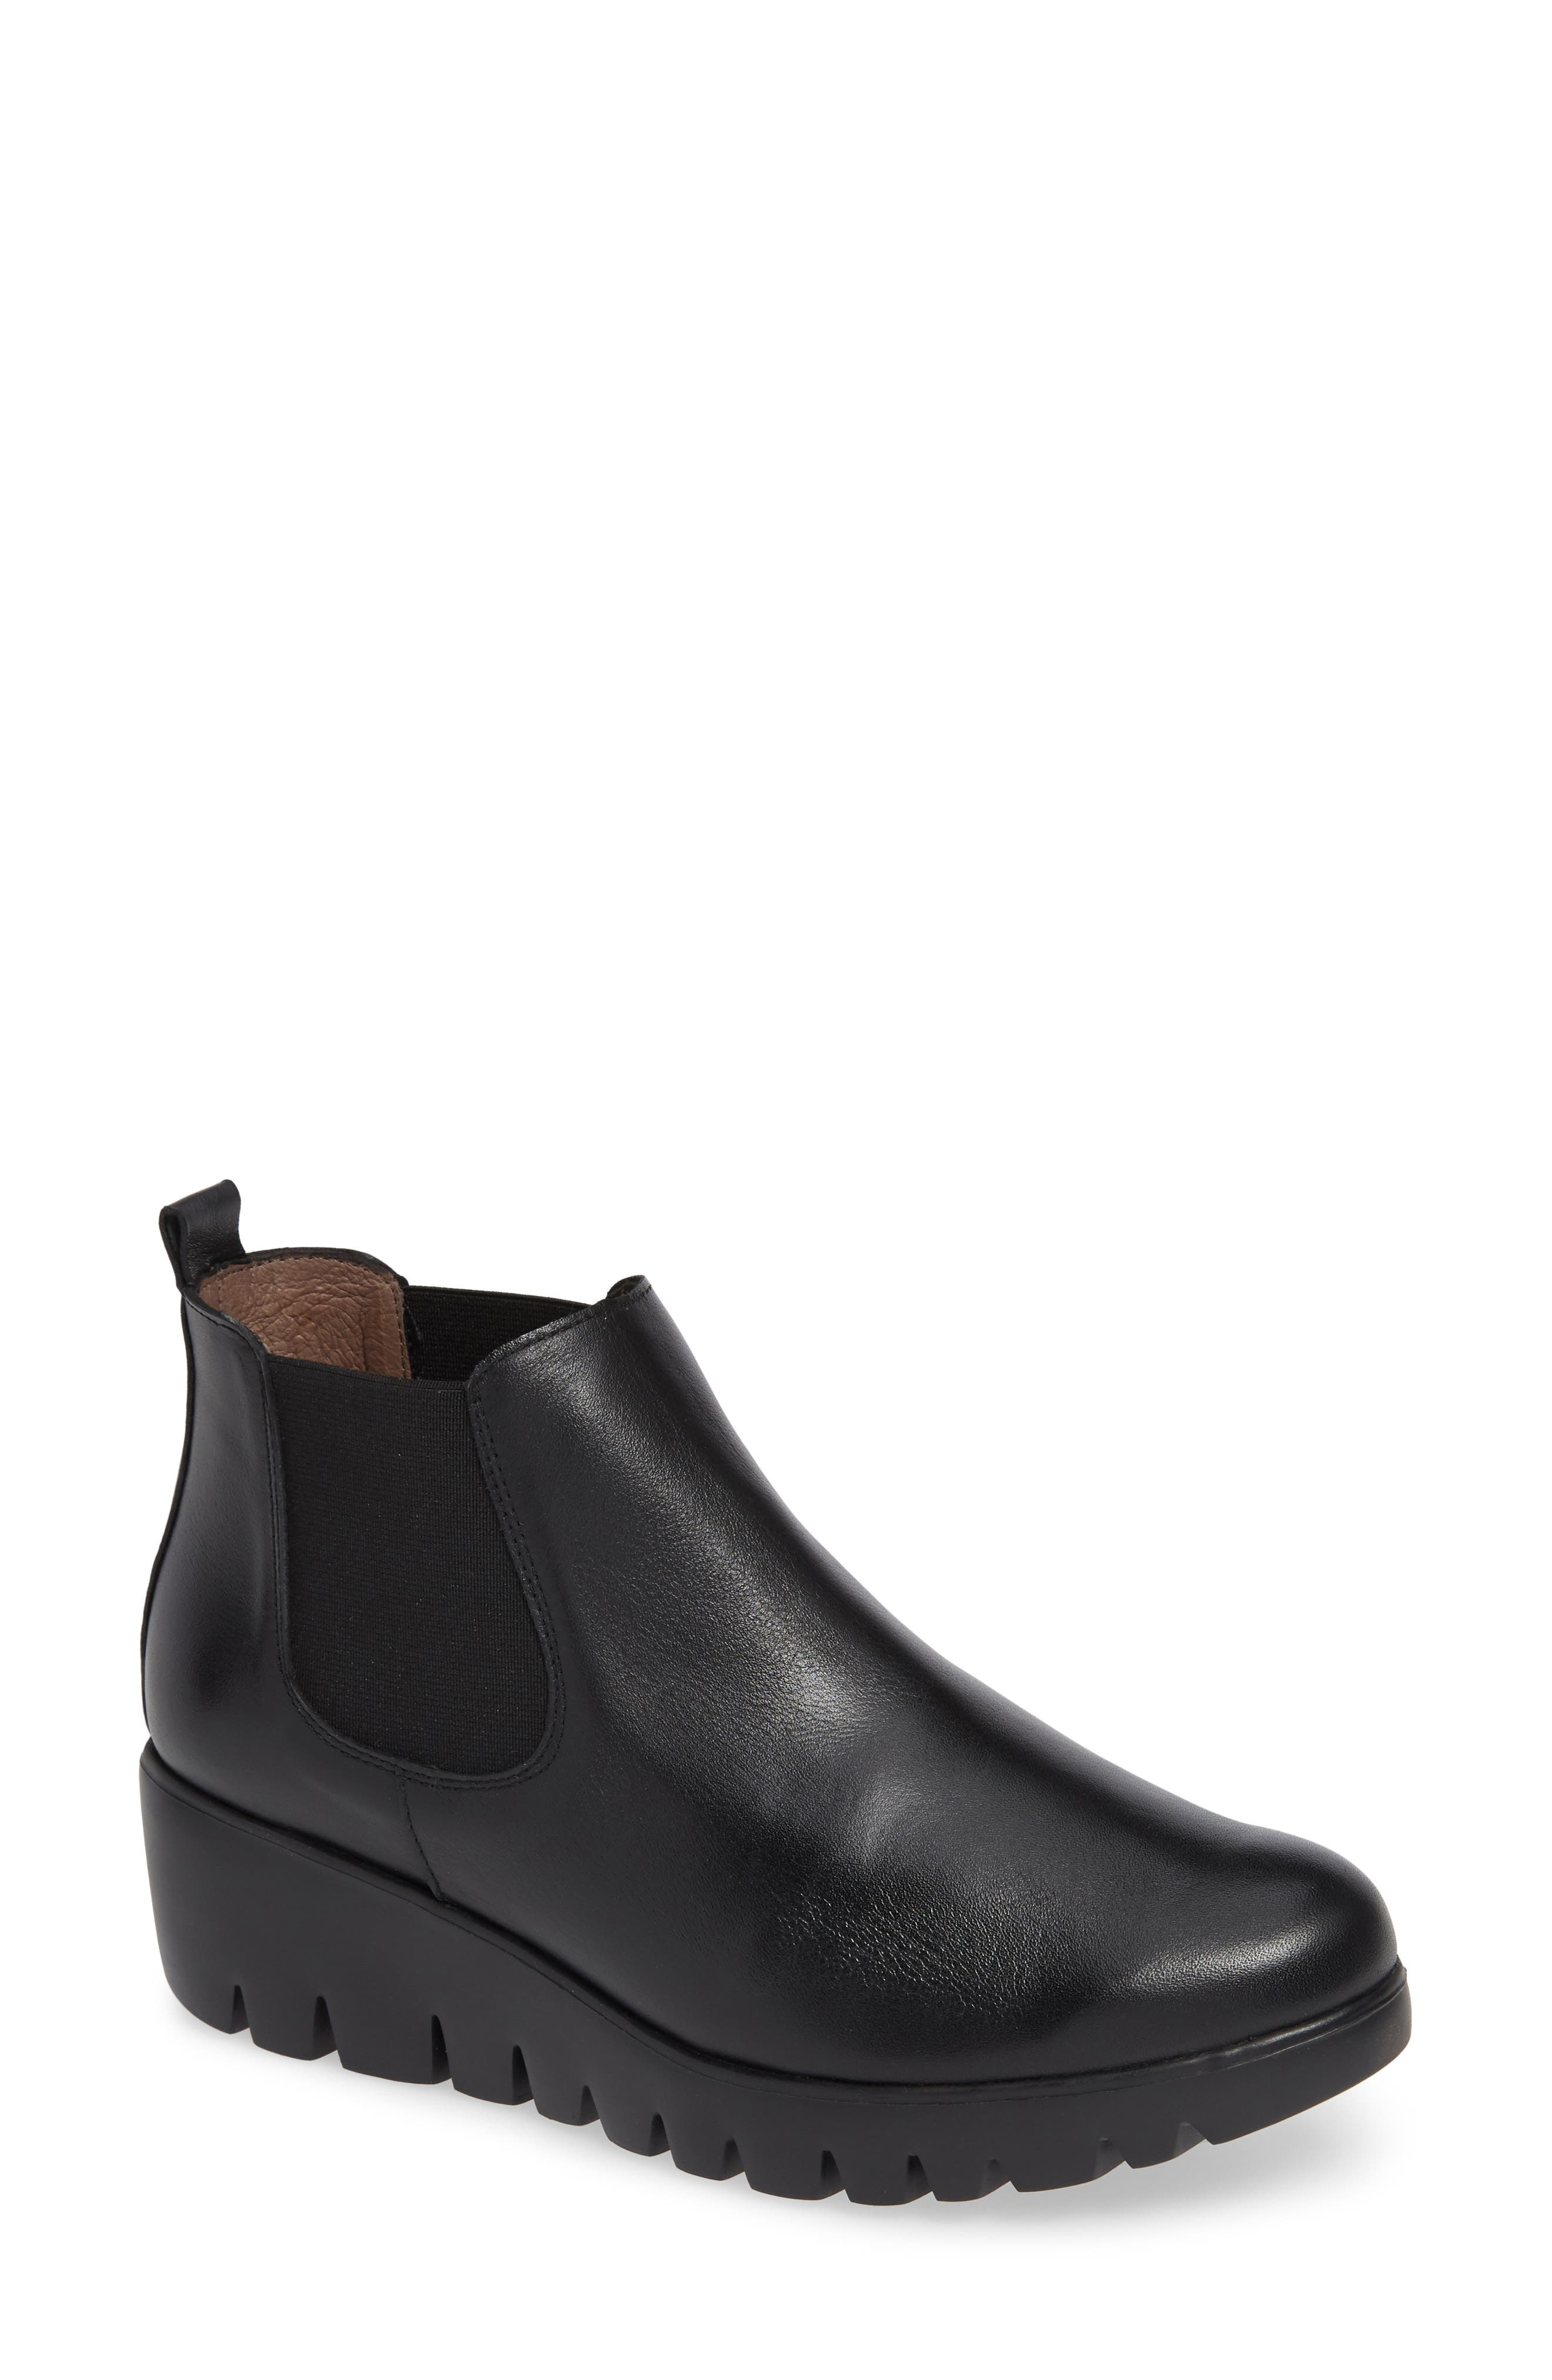 Slip-On Chelsea Boot,                         Main,                         color, BLACK SMOOTH LEATHER